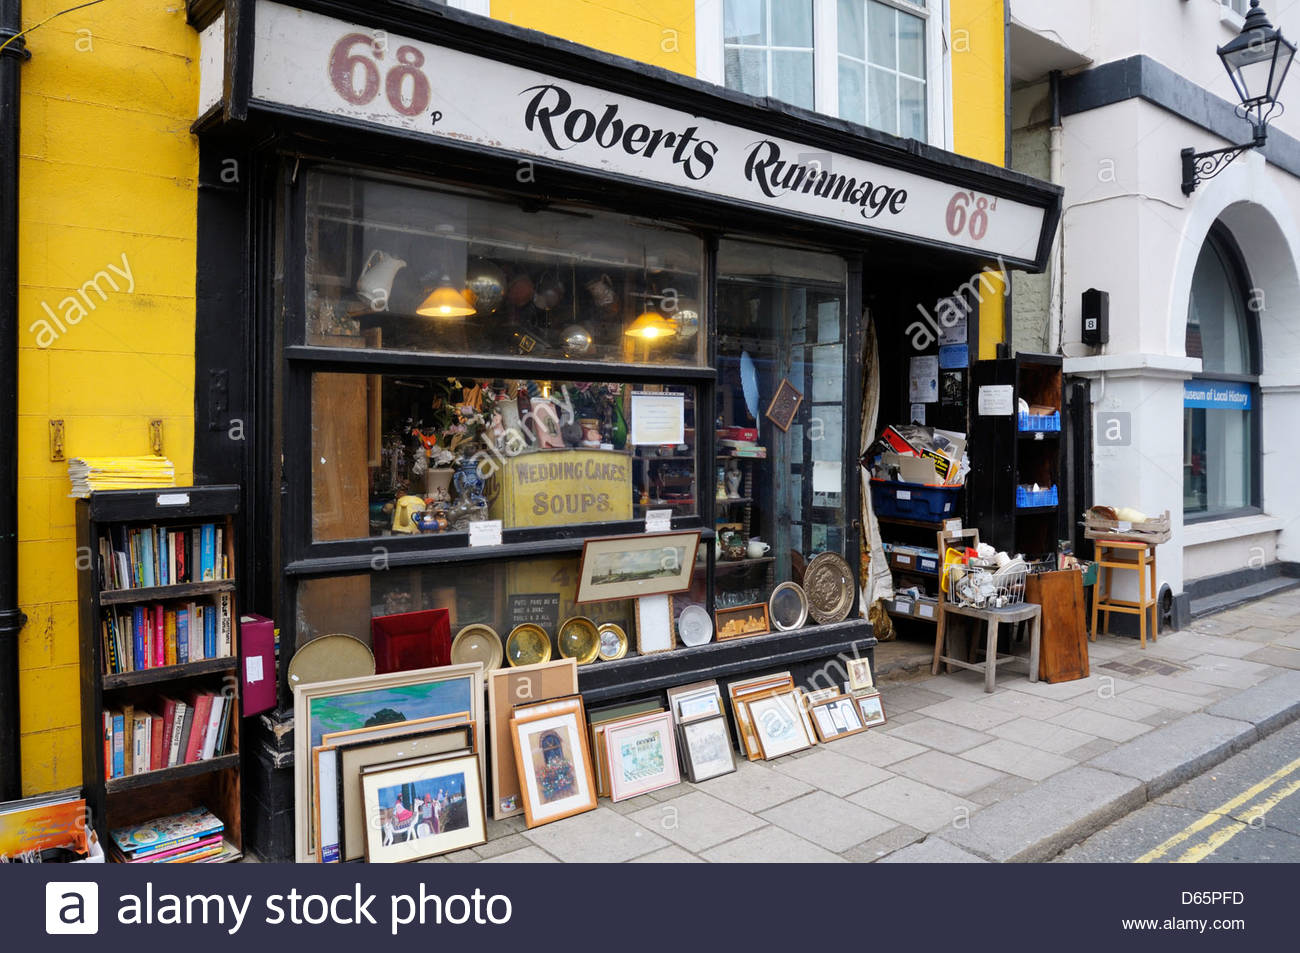 Roberts Rummage, secondhand shop, Hastings, East Sussext, England Stock Photo